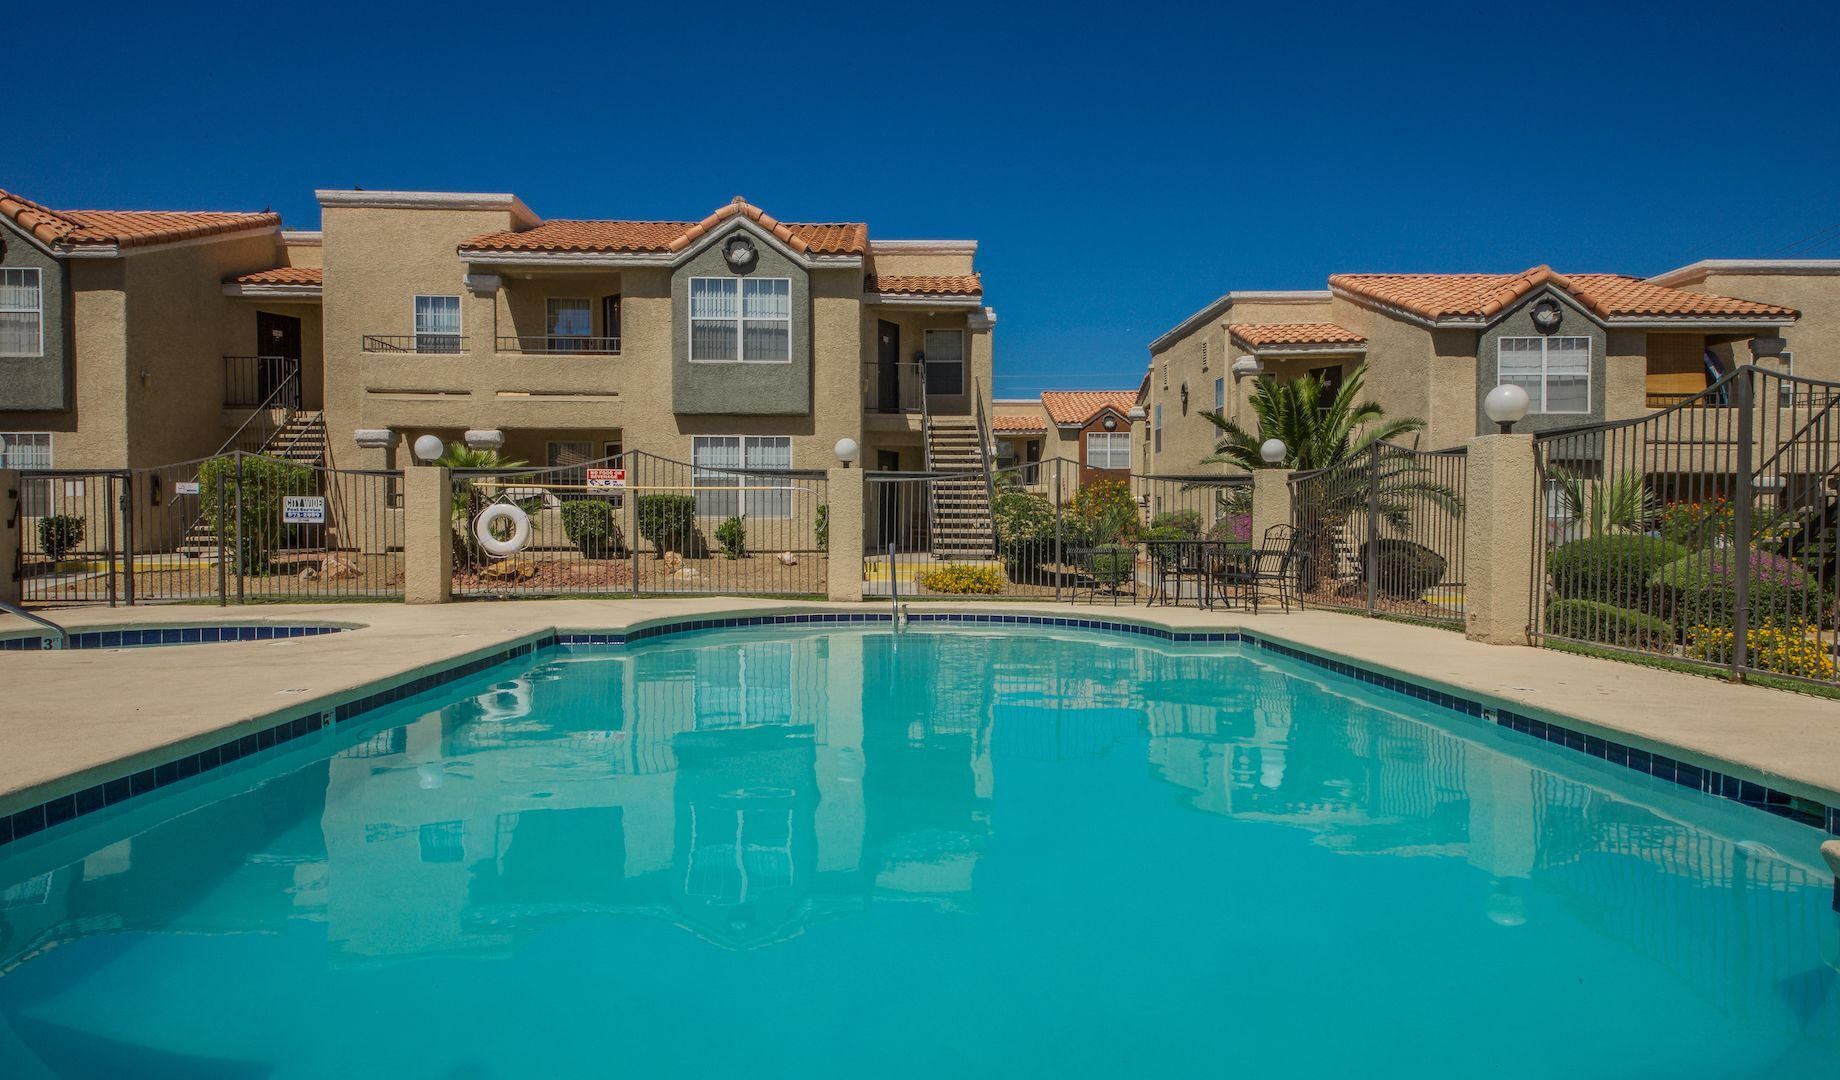 Apartments For Rent In Las Vegas Nv Southern Cove Home